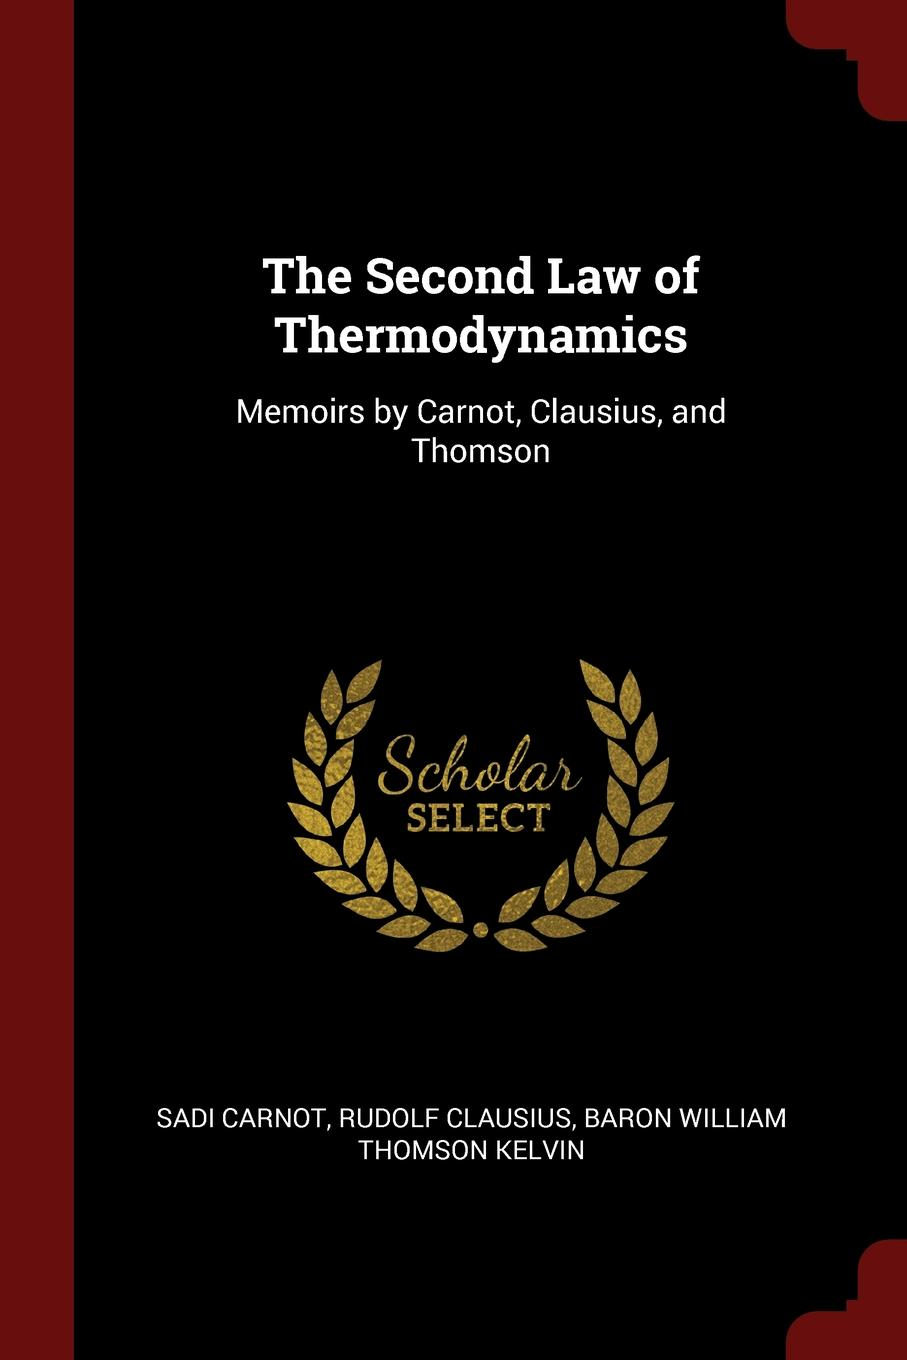 Sadi Carnot, Rudolf Clausius, Baron William Thomson Kelvin The Second Law of Thermodynamics. Memoirs by and